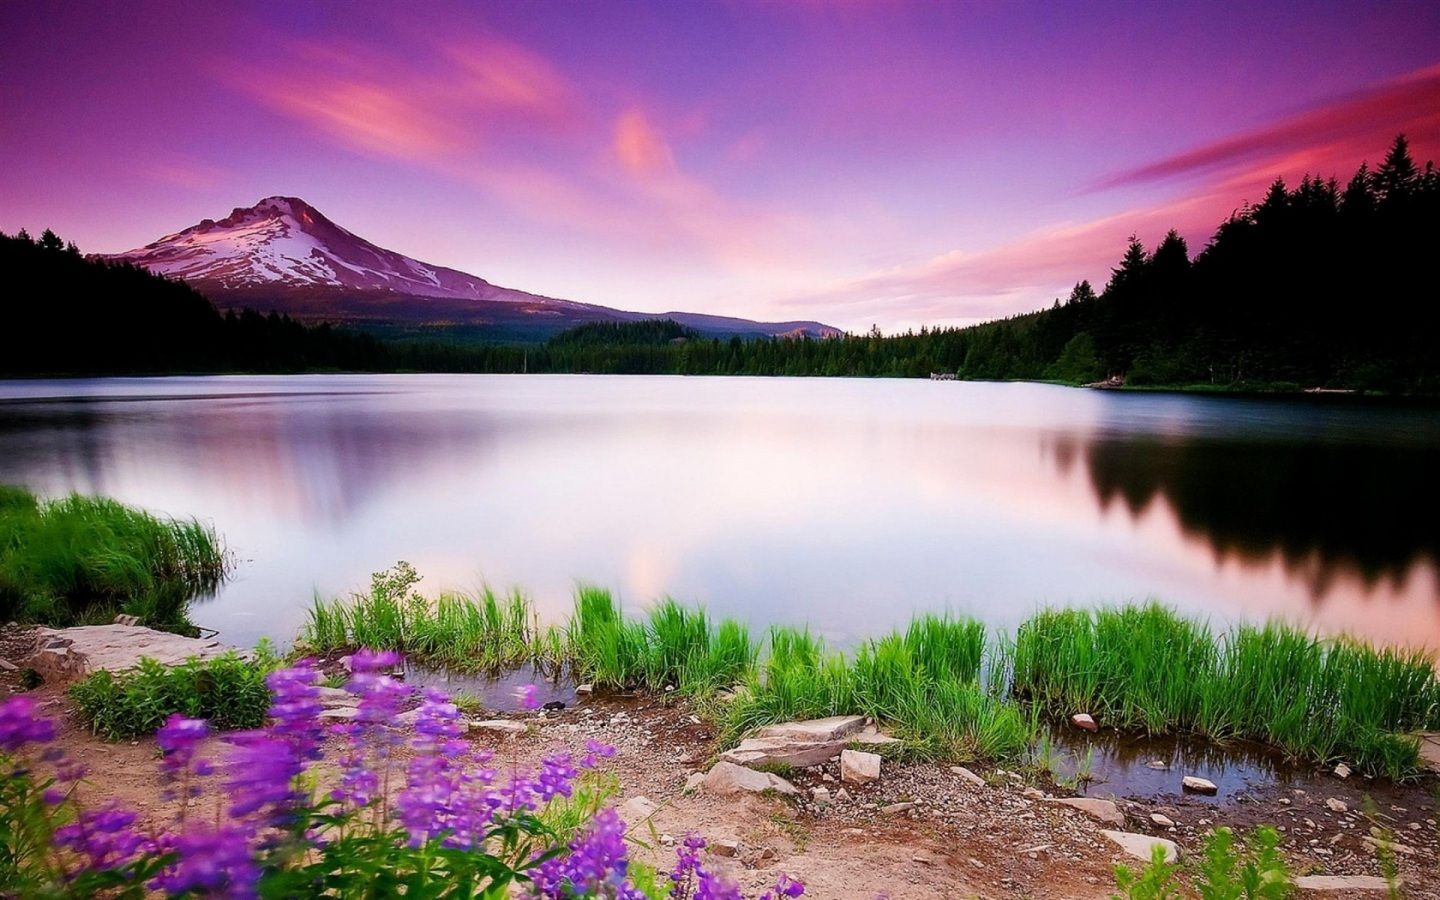 Most Beautiful Nature Wallpaper Free Download Background 1 Hd Wallpapers Waterfall Wallpaper Scenery Wallpaper Beautiful Nature Wallpaper